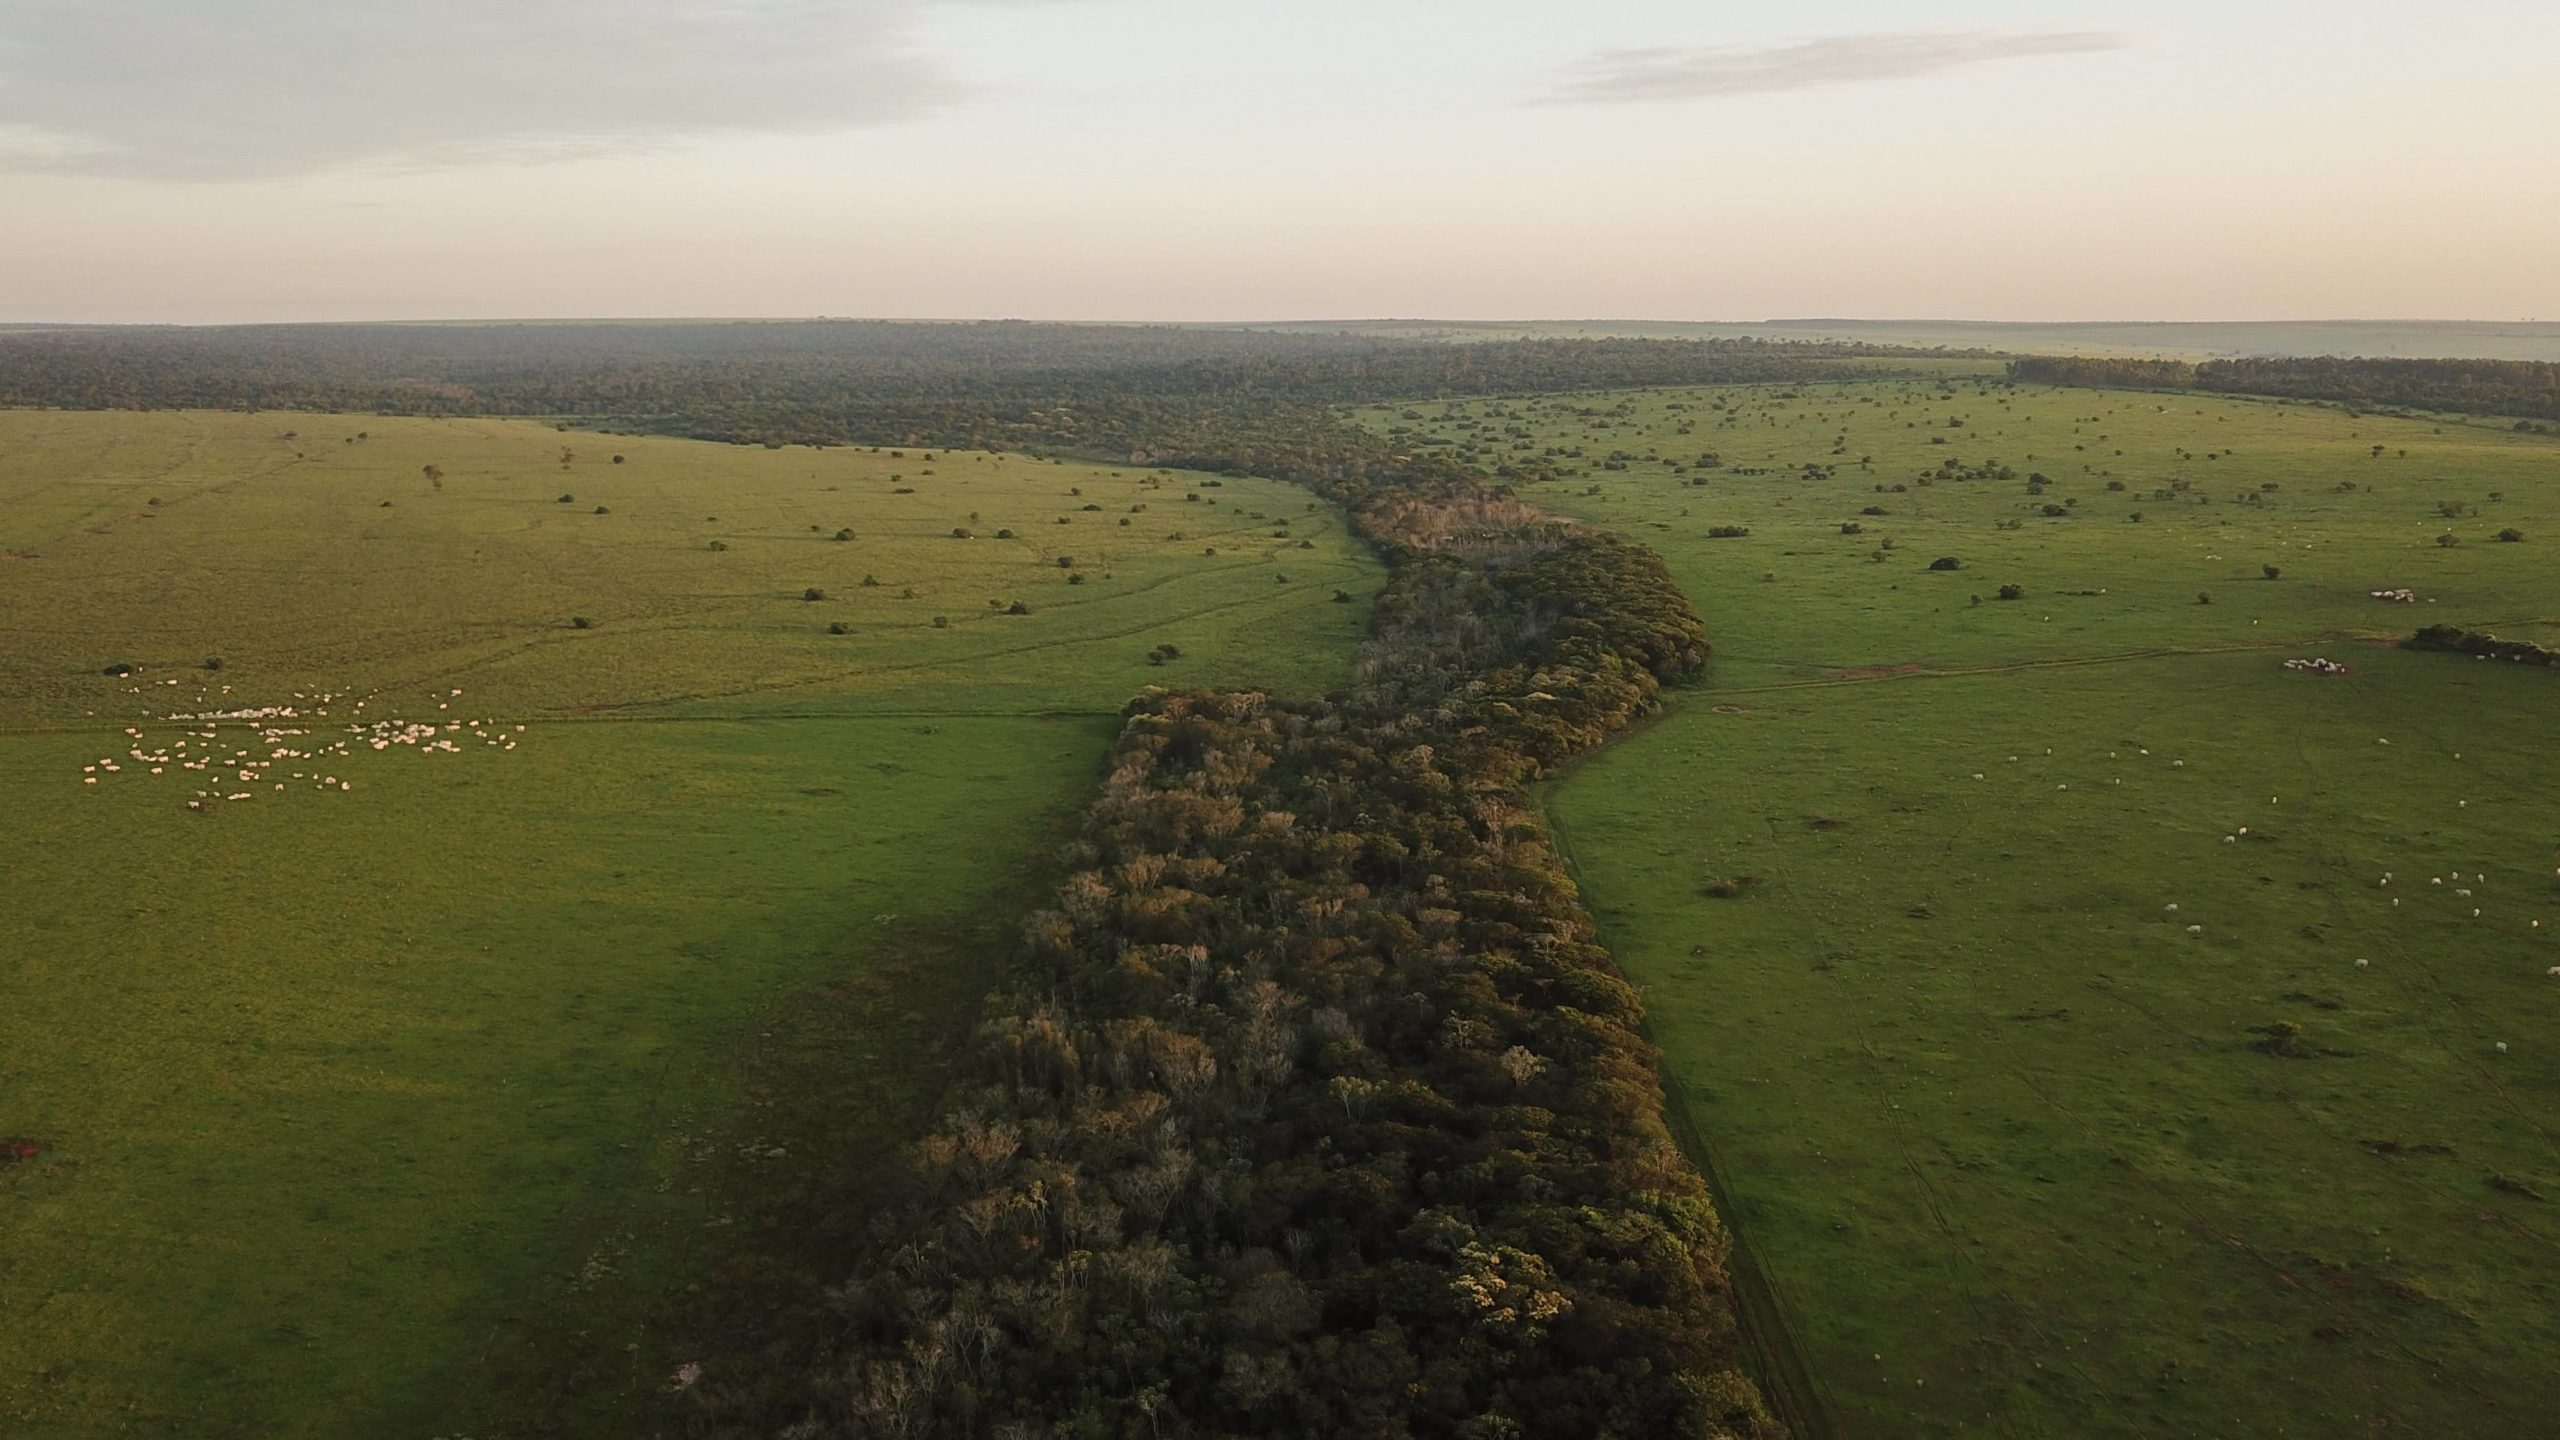 A forest corridor planted on farmland provides critical connectivity for wildlife to move between forest fragments. Photo by IPE via Ecosia.